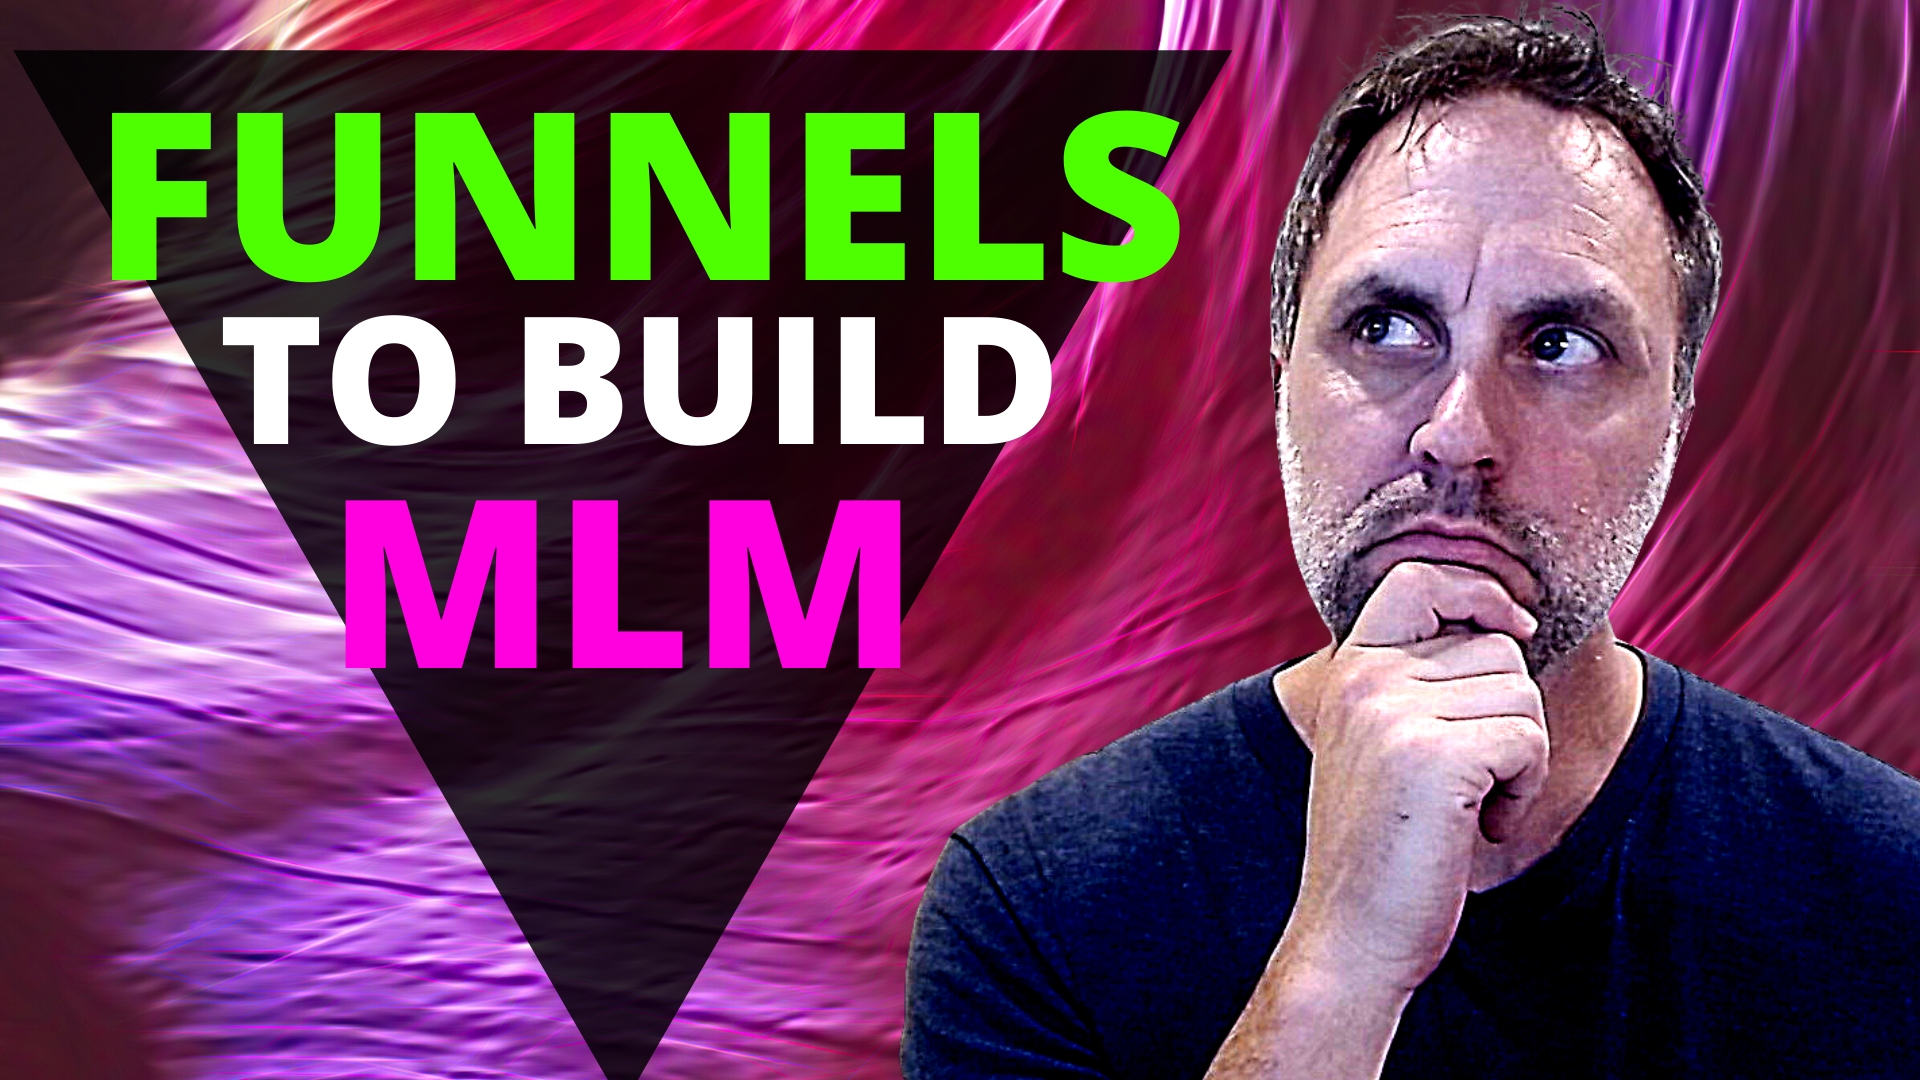 Network Marketing Funnels | How To Use Funnels To Build Your Network Marketing Team